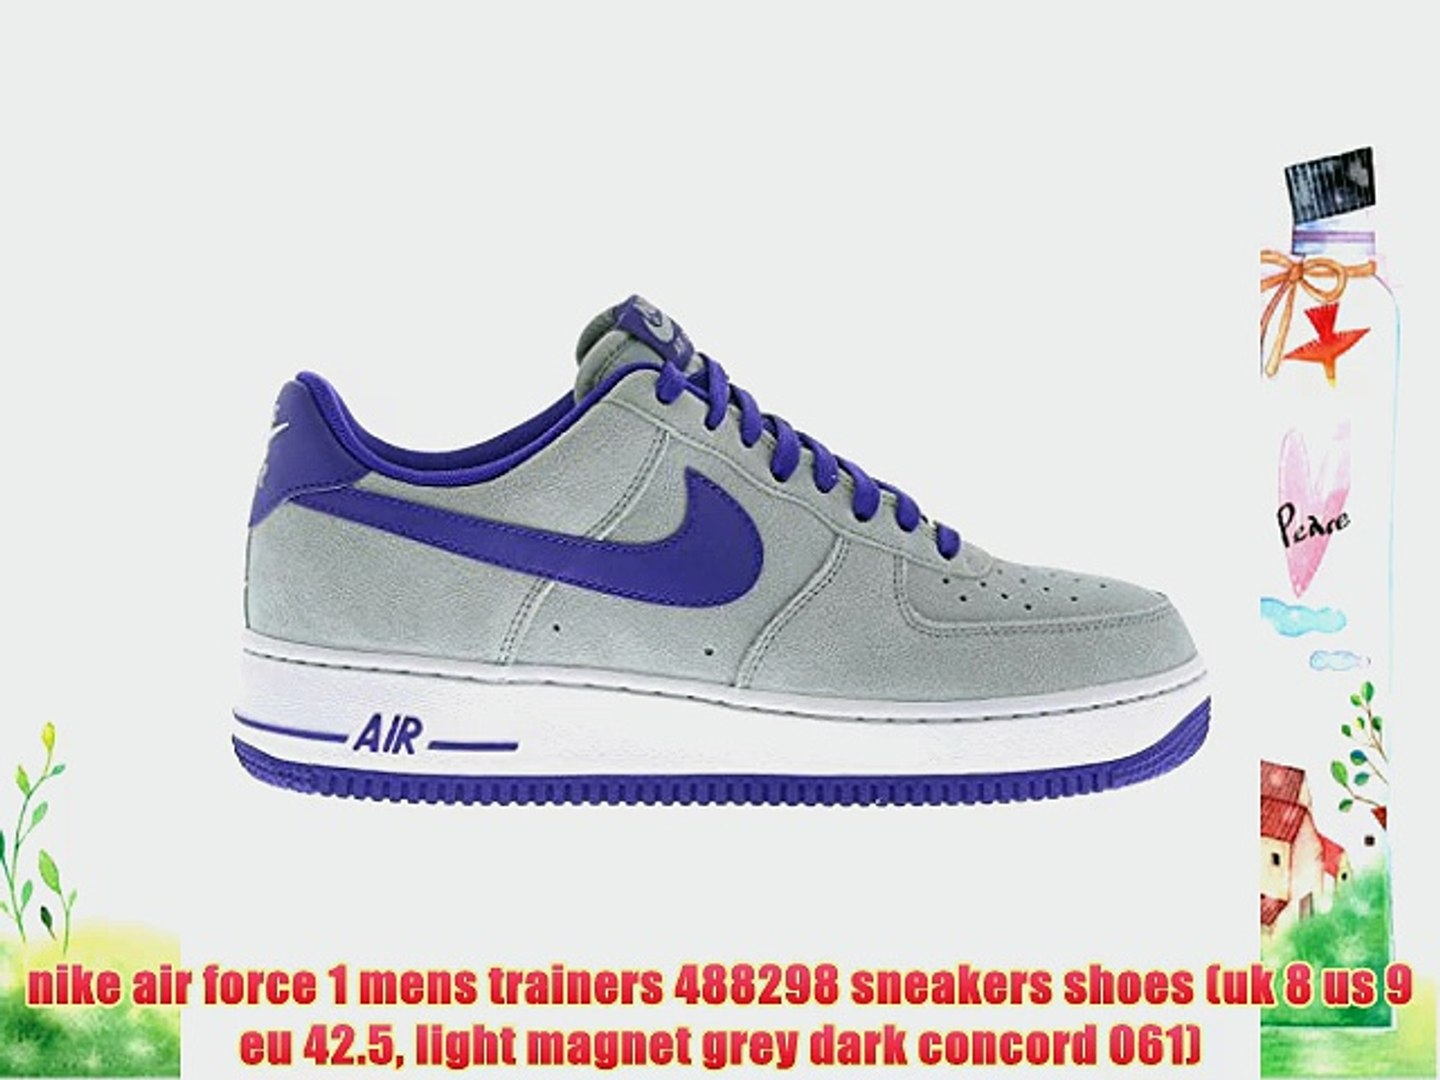 nike air force 1 mens trainers 488298 sneakers shoes (uk 8 us 9 eu 42.5 light magnet grey dark